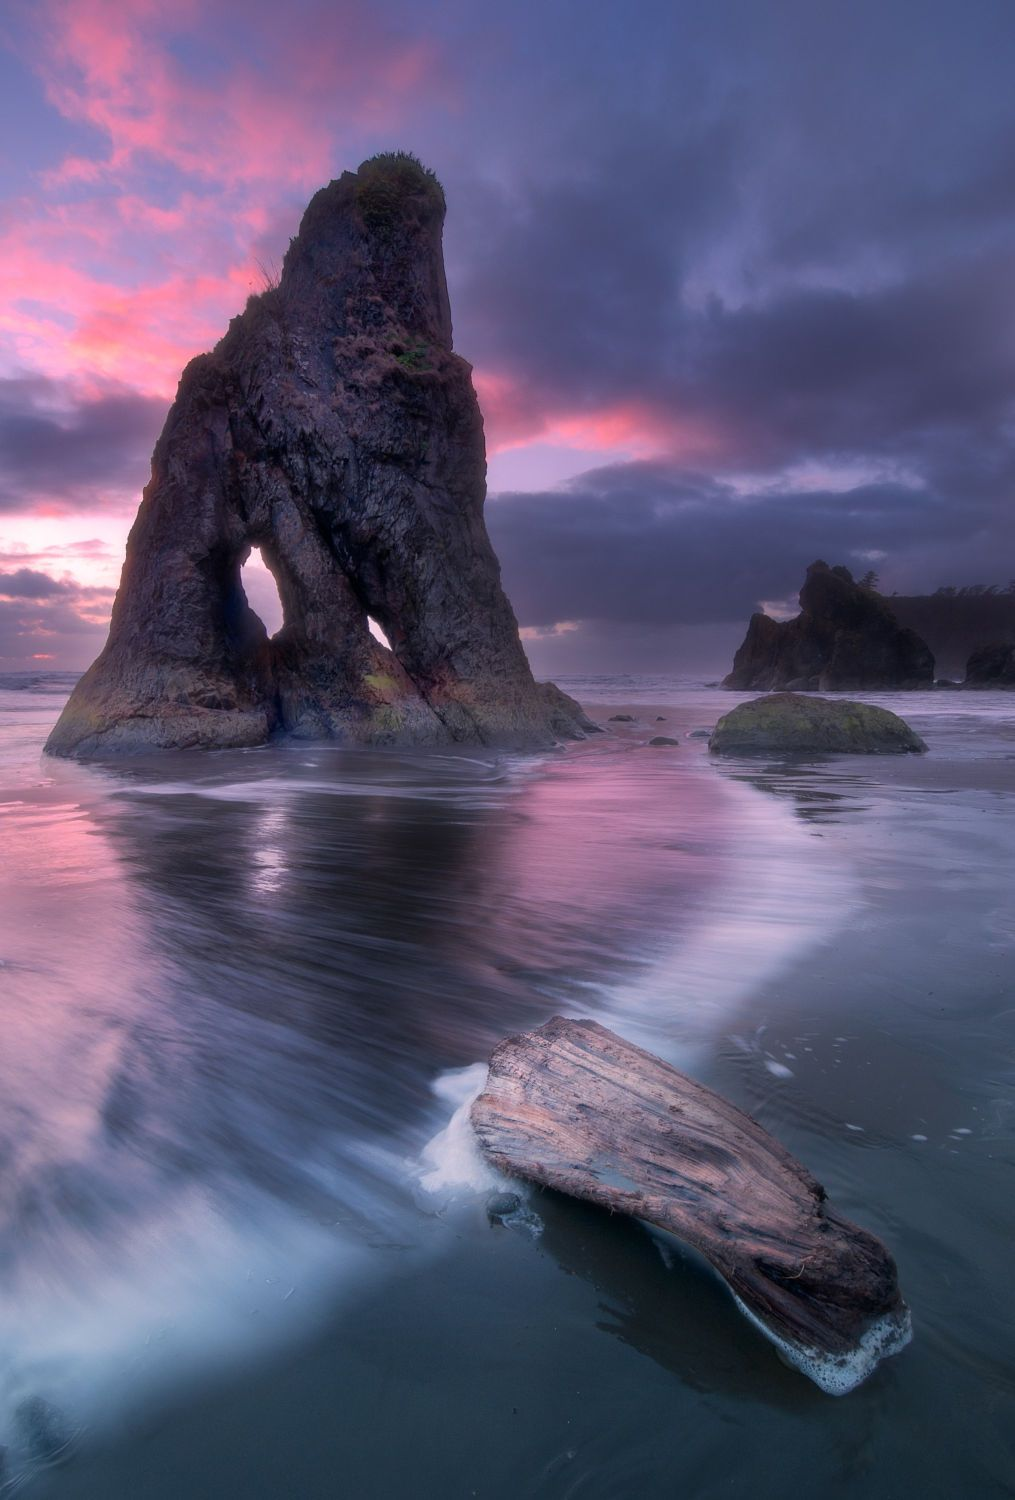 Ruby Beach Olympic National Park Washington Usa Has Like Crystals In The Sand A Tremendous Amount Of Driftwood And Is Notable For Number